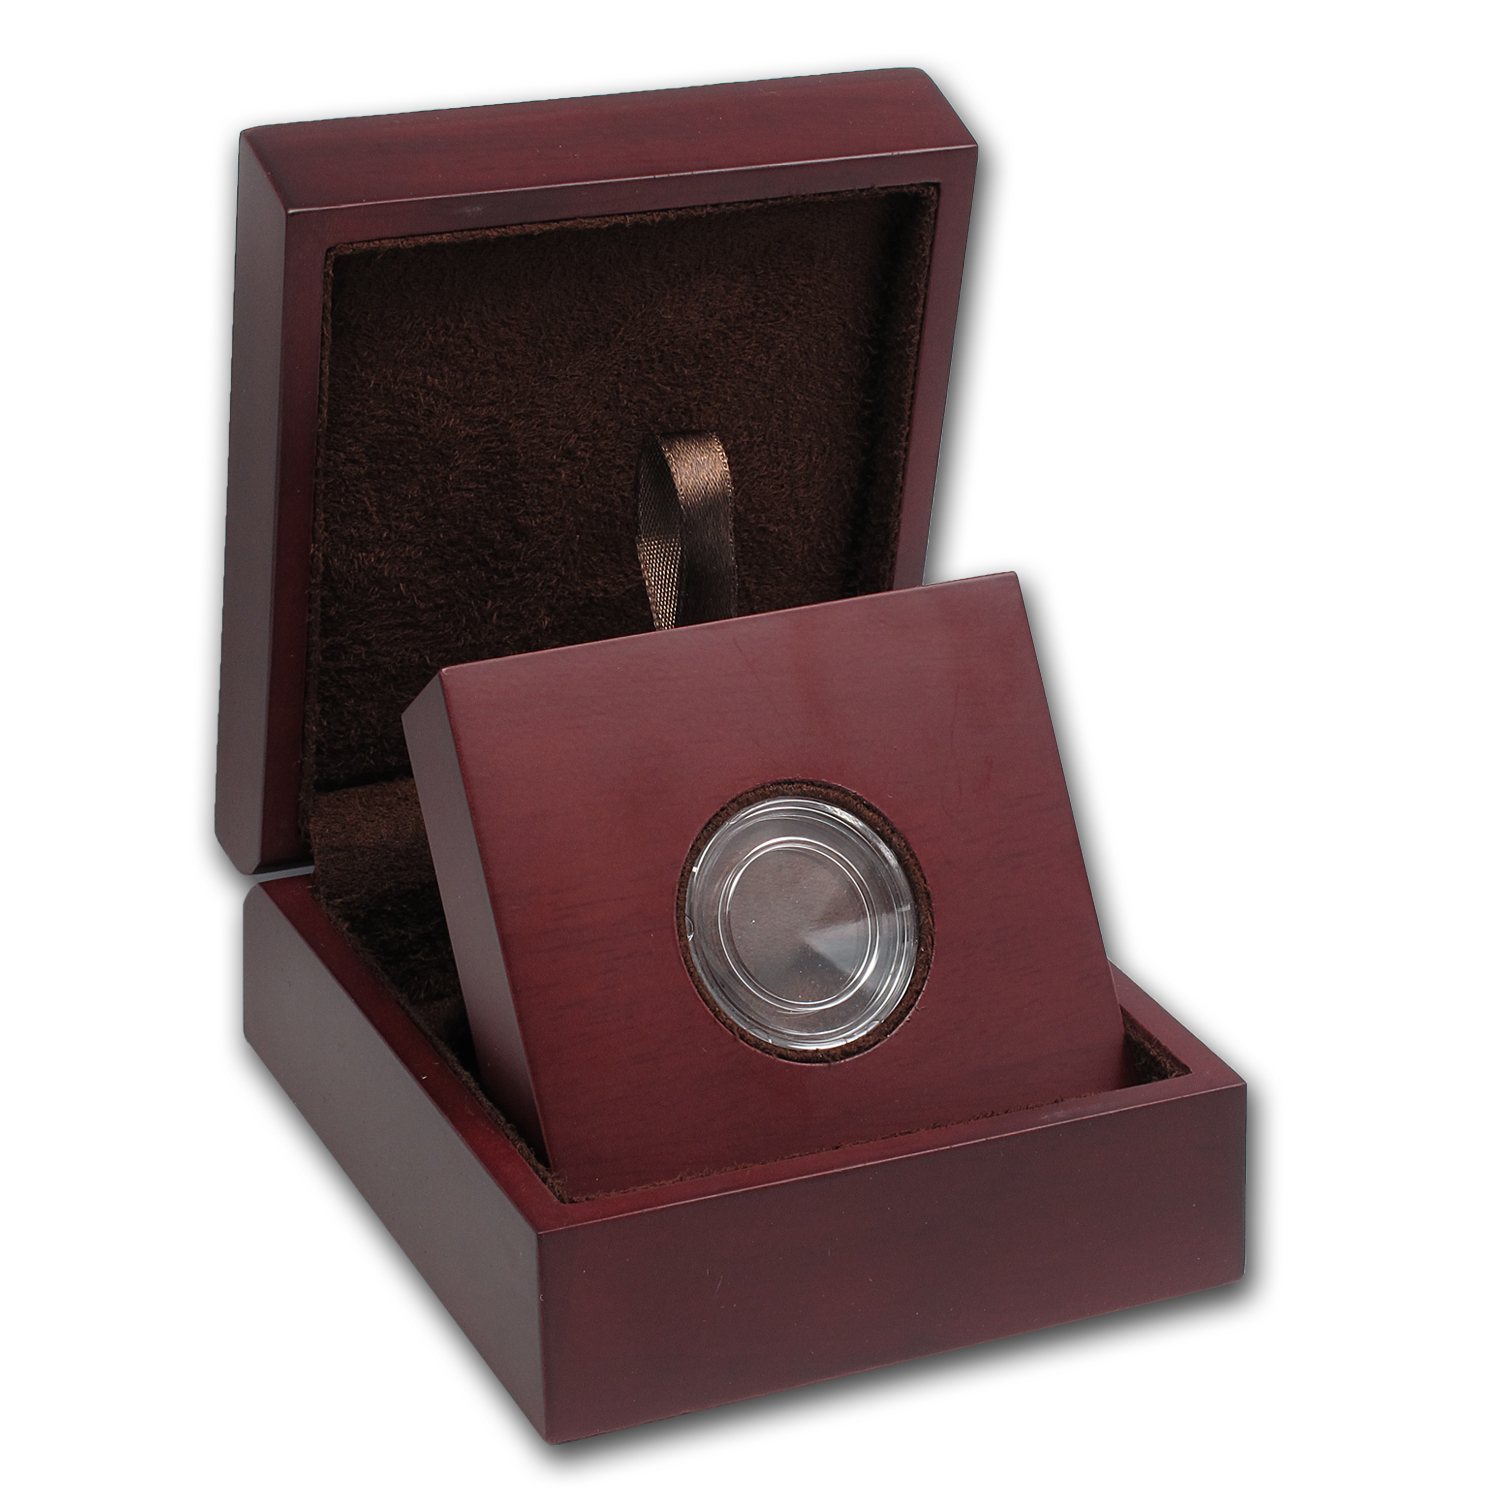 APMEX Wood Gift Box - Includes 19 mm Direct Fit Air-Tite Holder